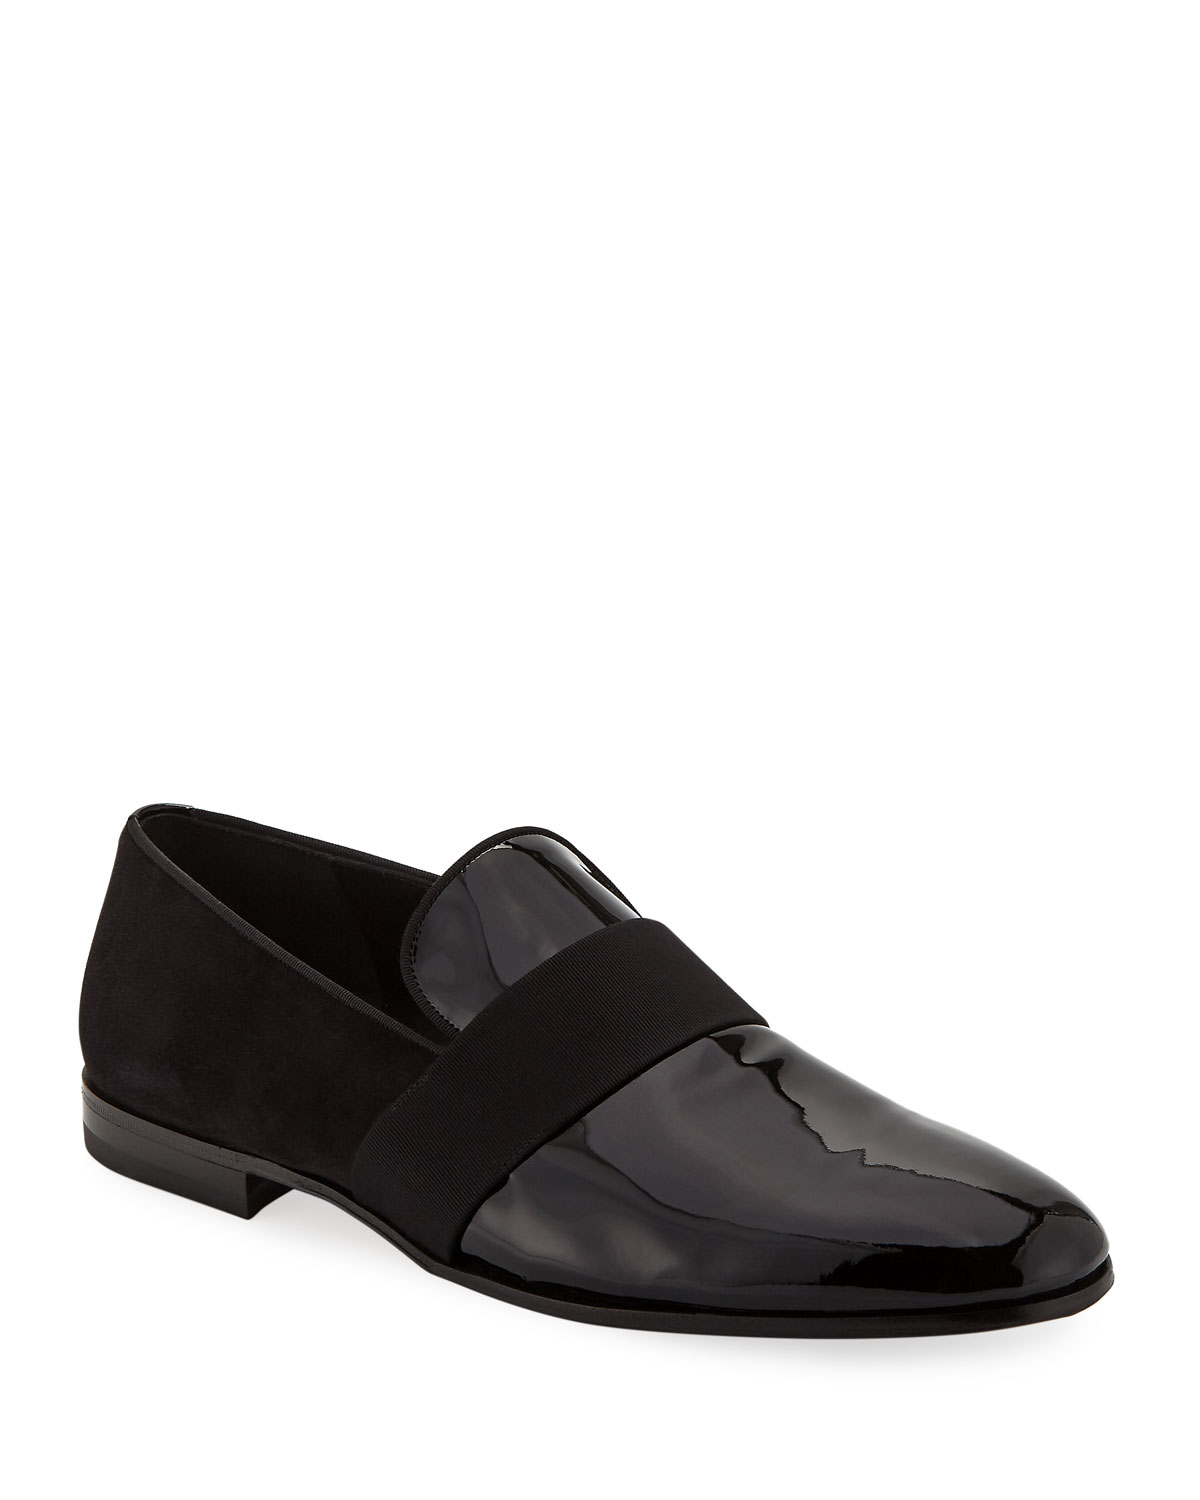 87718eb4a797 Salvatore FerragamoMen s Bryden Patent Leather   Suede Slip-On Dress Loafer  Shoe